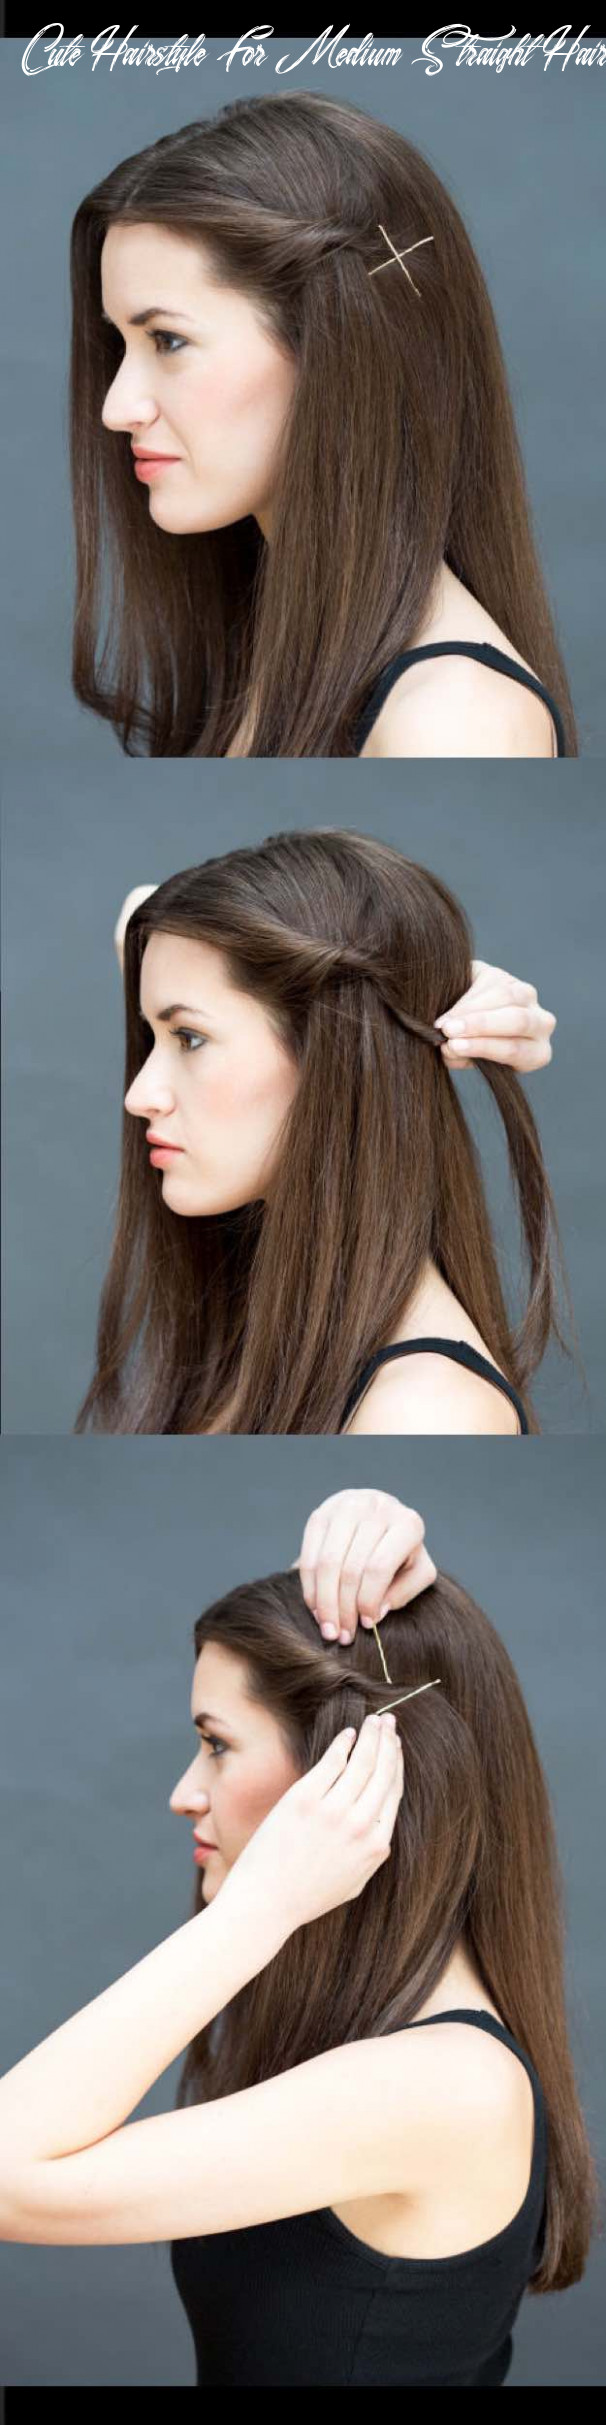 8 quick and easy hairstyles for straight hair the goddess cute hairstyle for medium straight hair